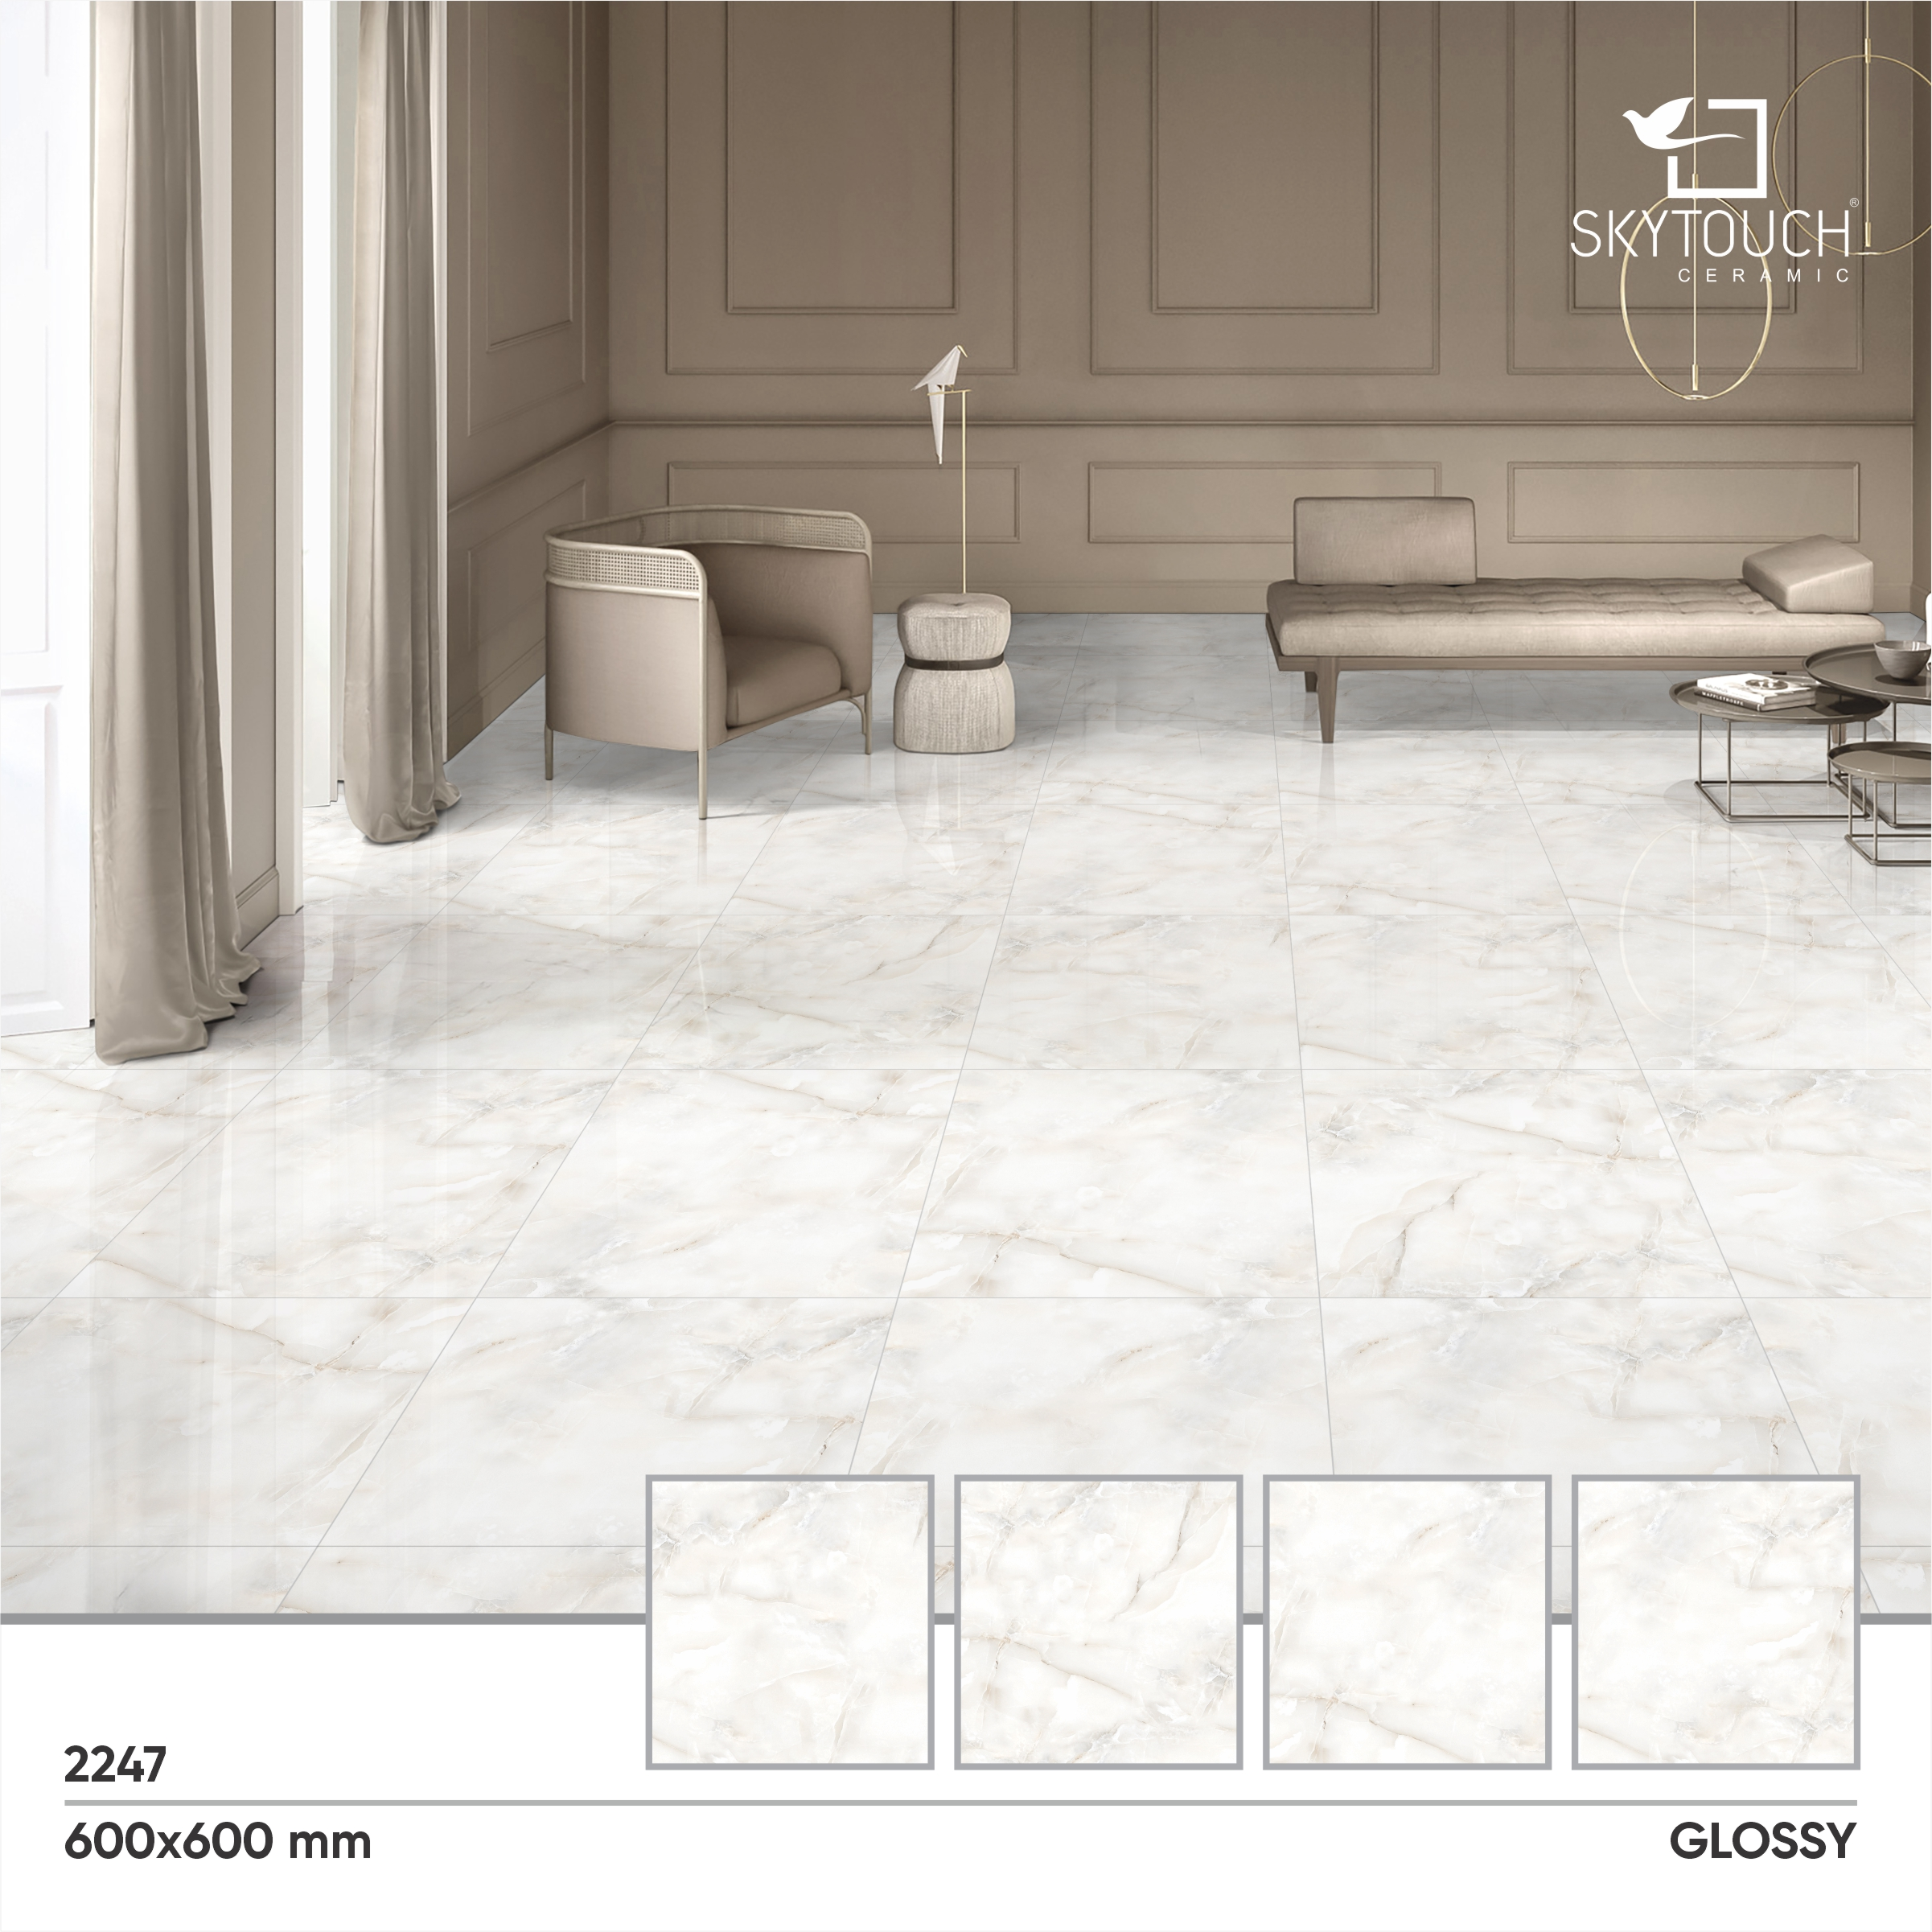 easy clean porcelain tile polished new material products patented porcelain tile kitchen and bathroom wall tile buy grey texture 3d design glossy glazed porcelain prior customized square shape polished ceramic tiles limited